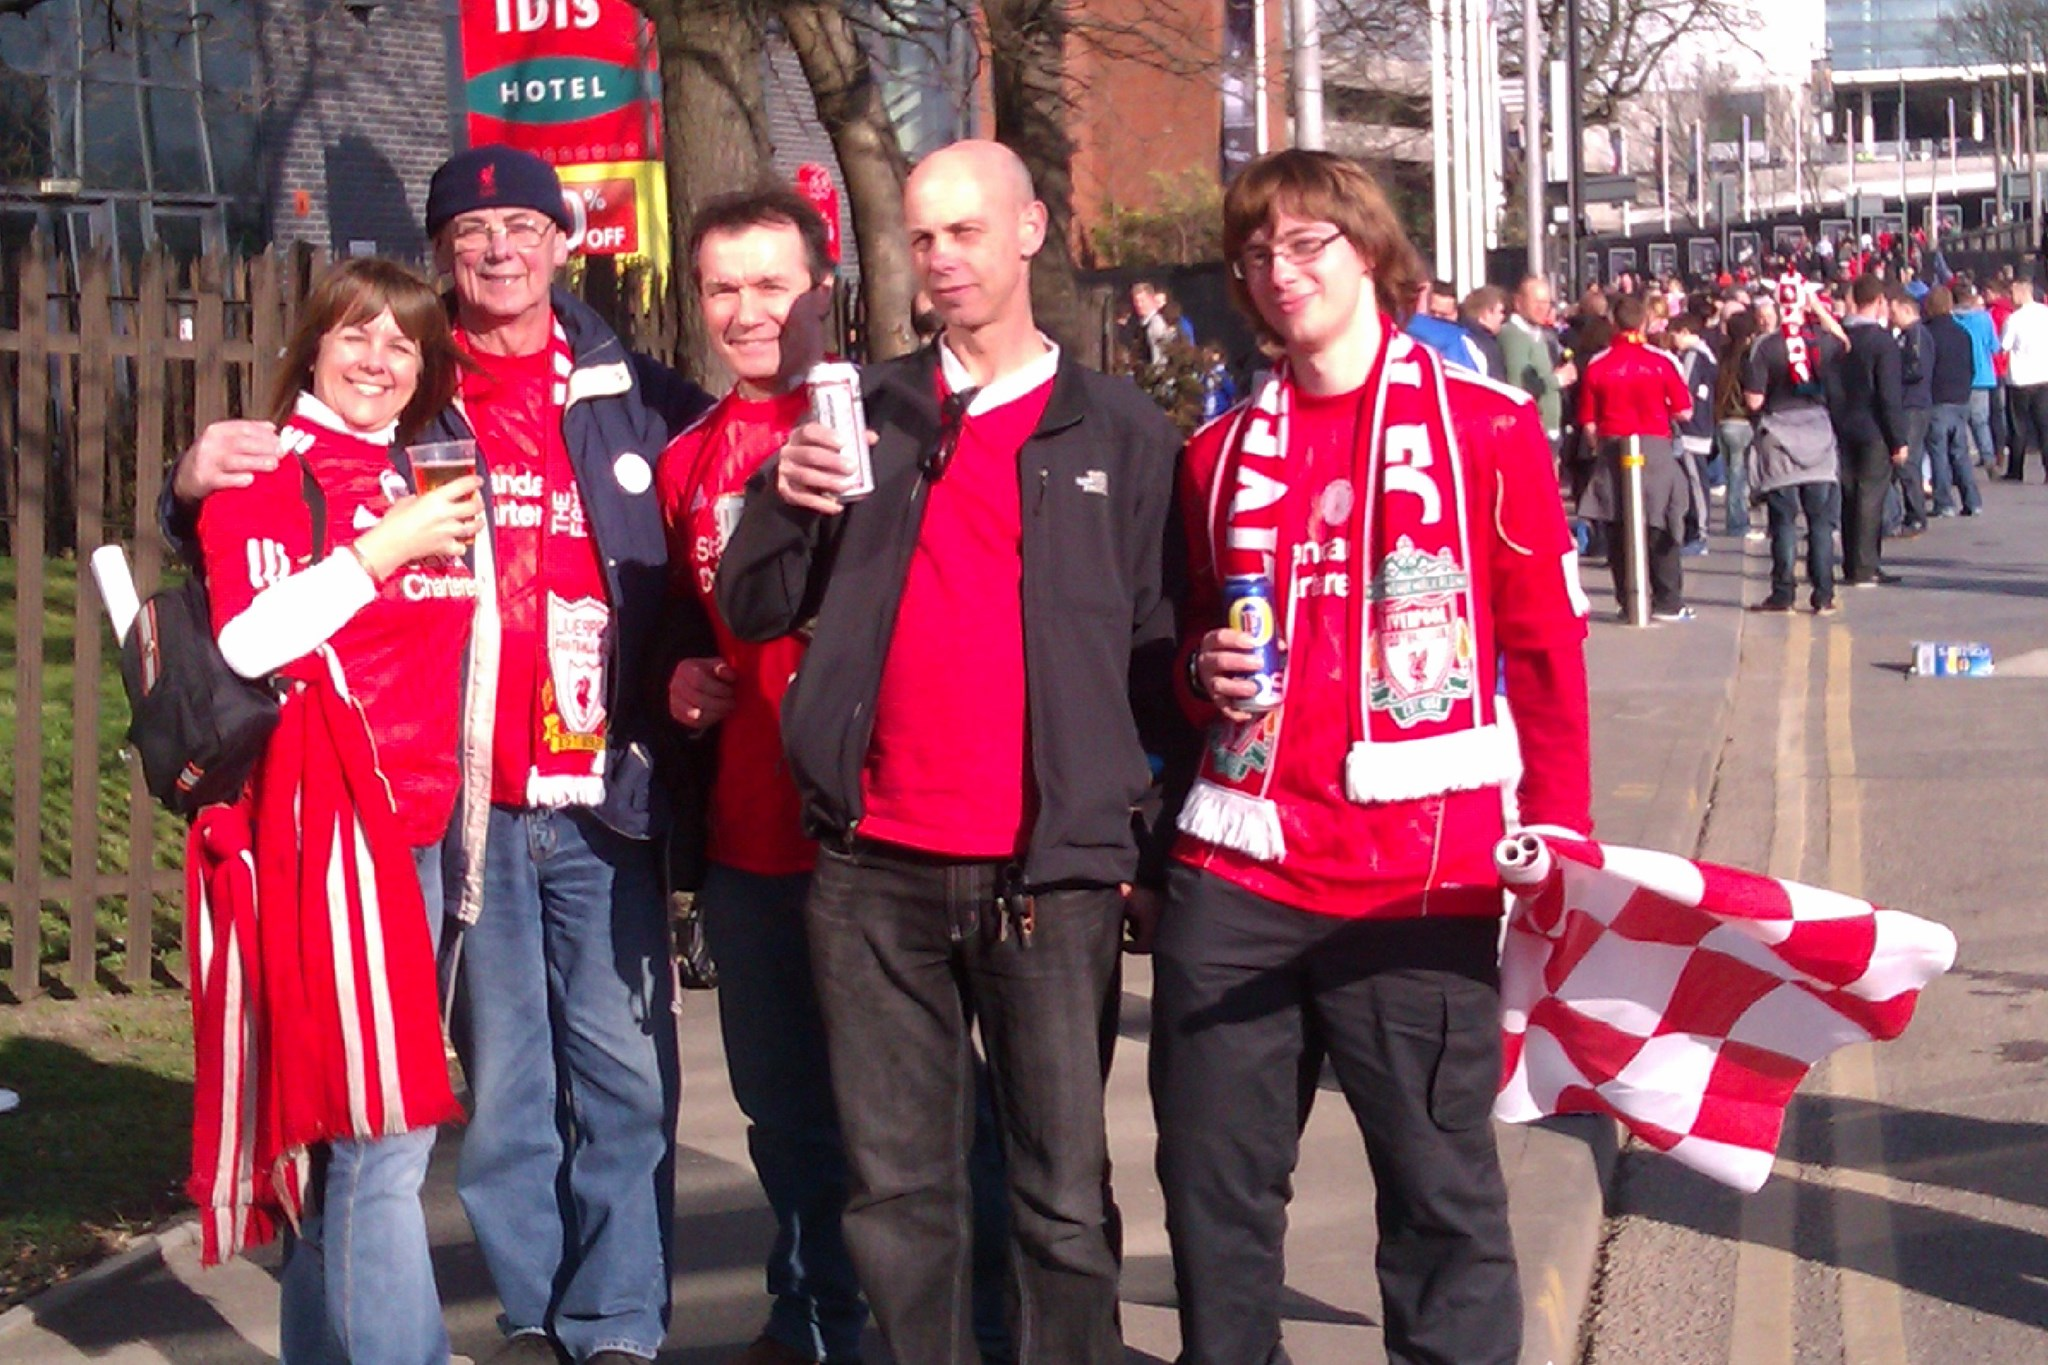 cheers NEW Wembly 26/02/2012